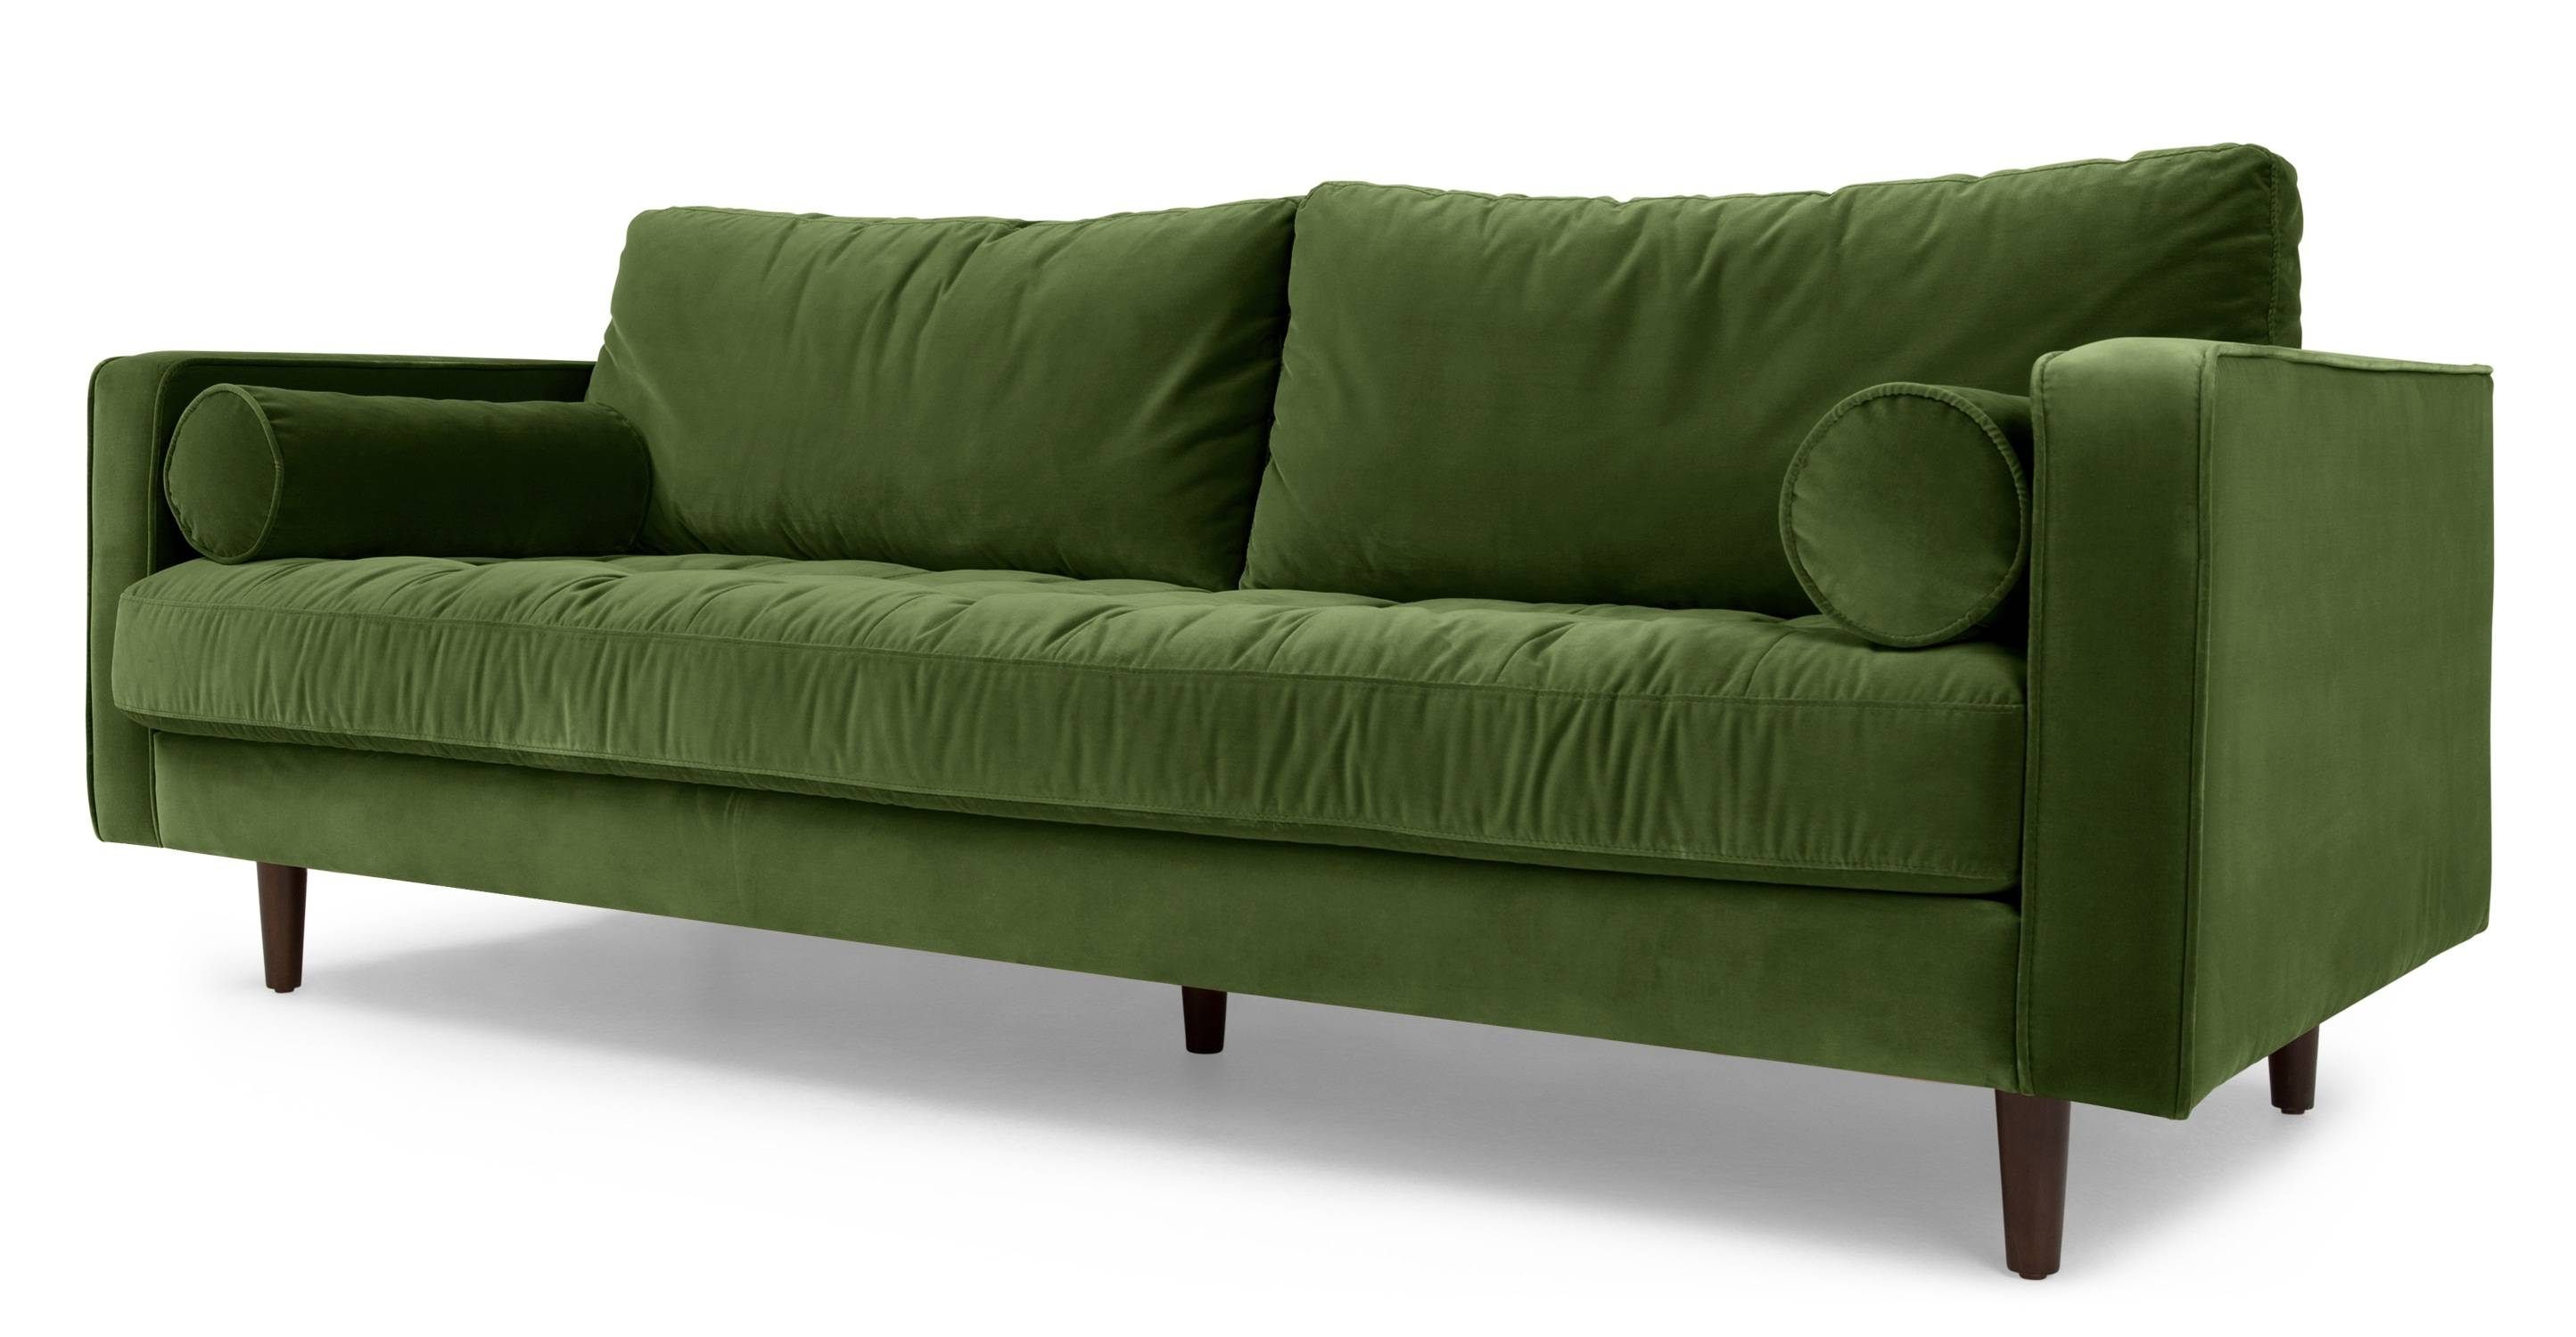 Velvet Sofa For Sale | Demand Sofas Set within 3 Seater Sofas for Sale (Image 29 of 30)